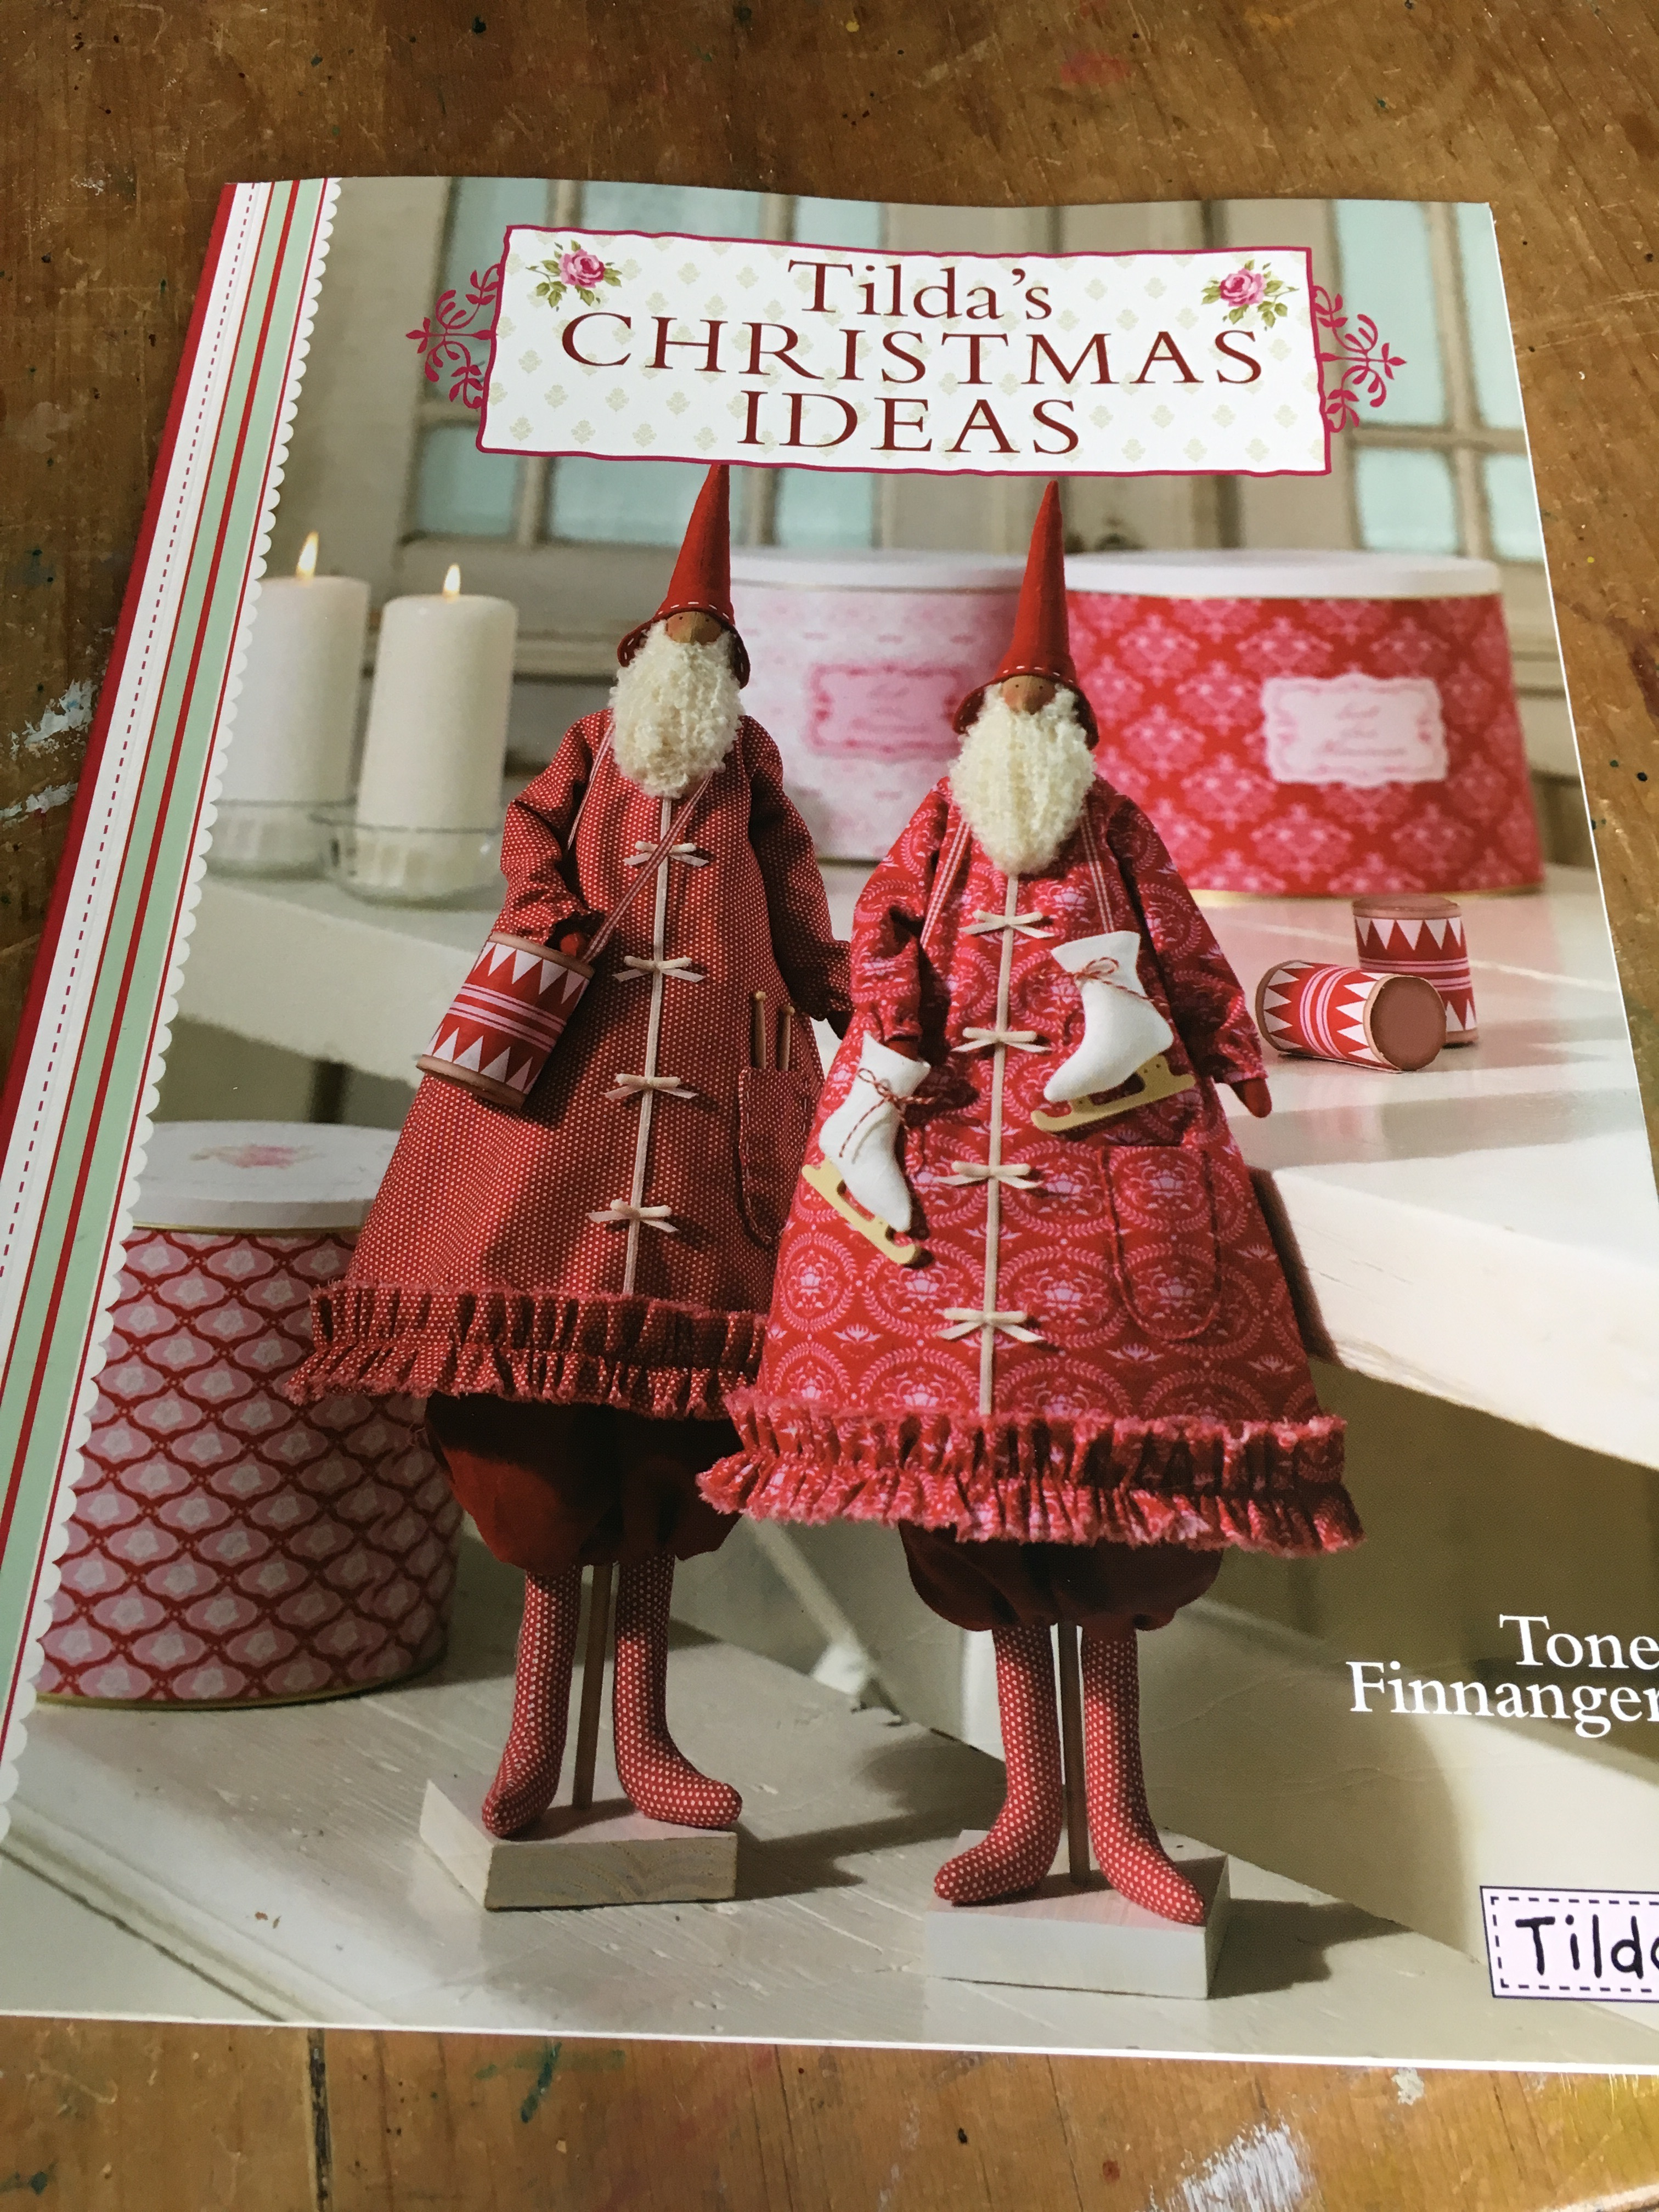 To Help Me With I Work In A Residential Home For Dementia Care And Would Love Some Easy Projects Do As Activities Then Came Across This Book